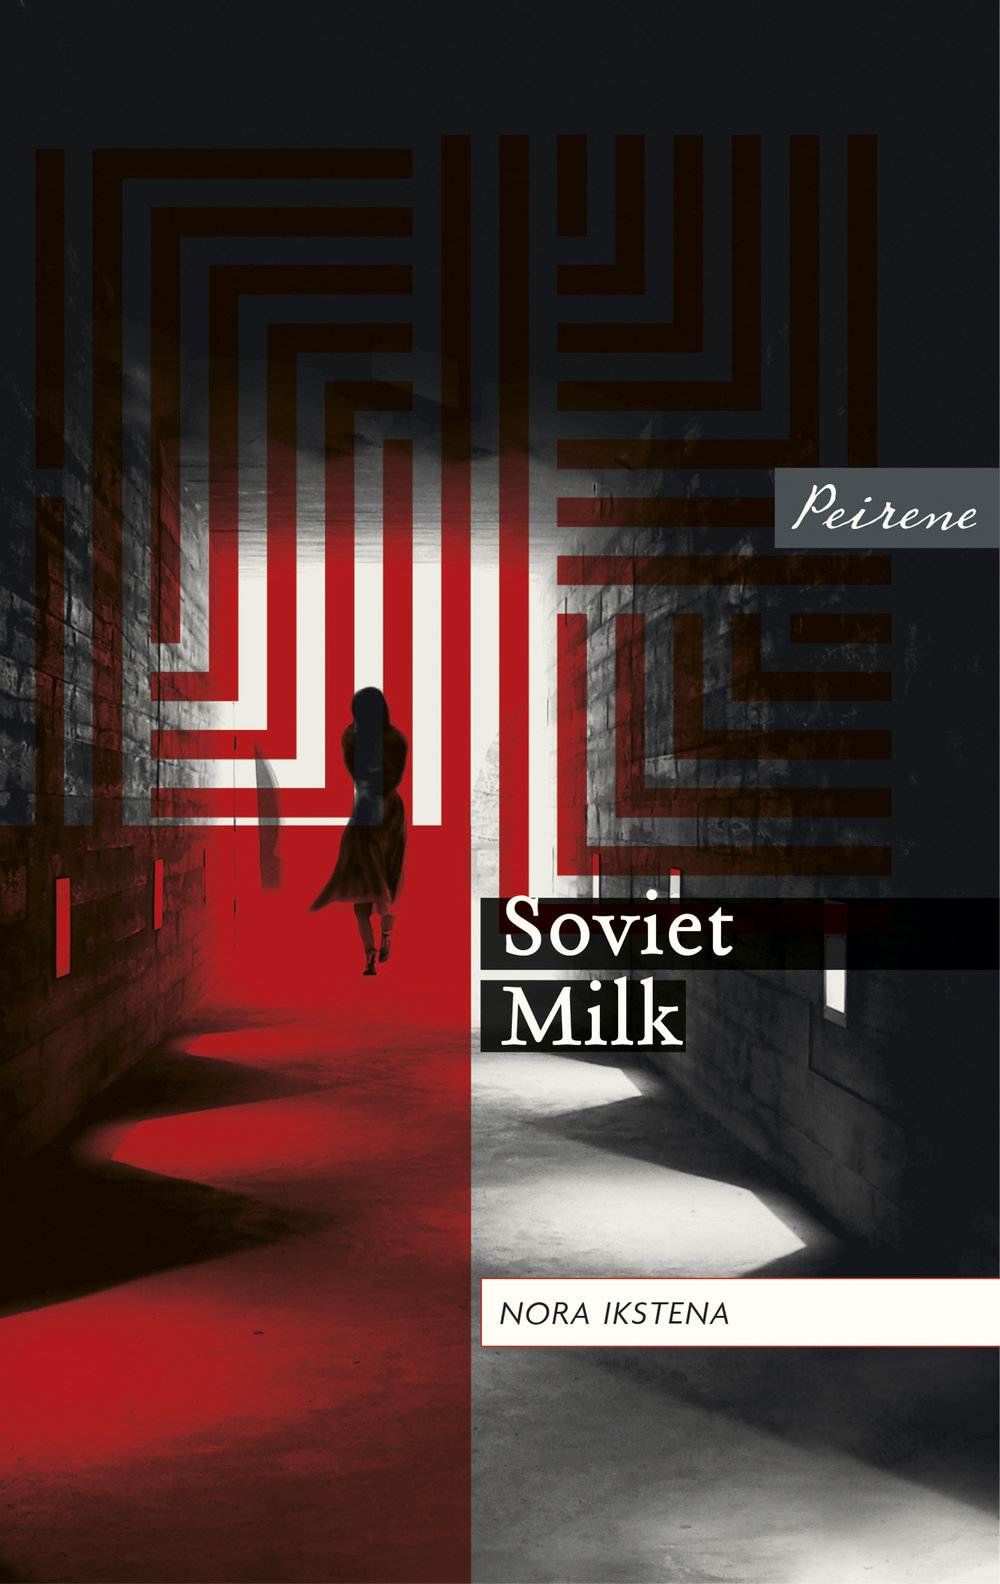 Soviet Milk by Nora Ikstena (tr. Margita Gailitis), Peirene Press